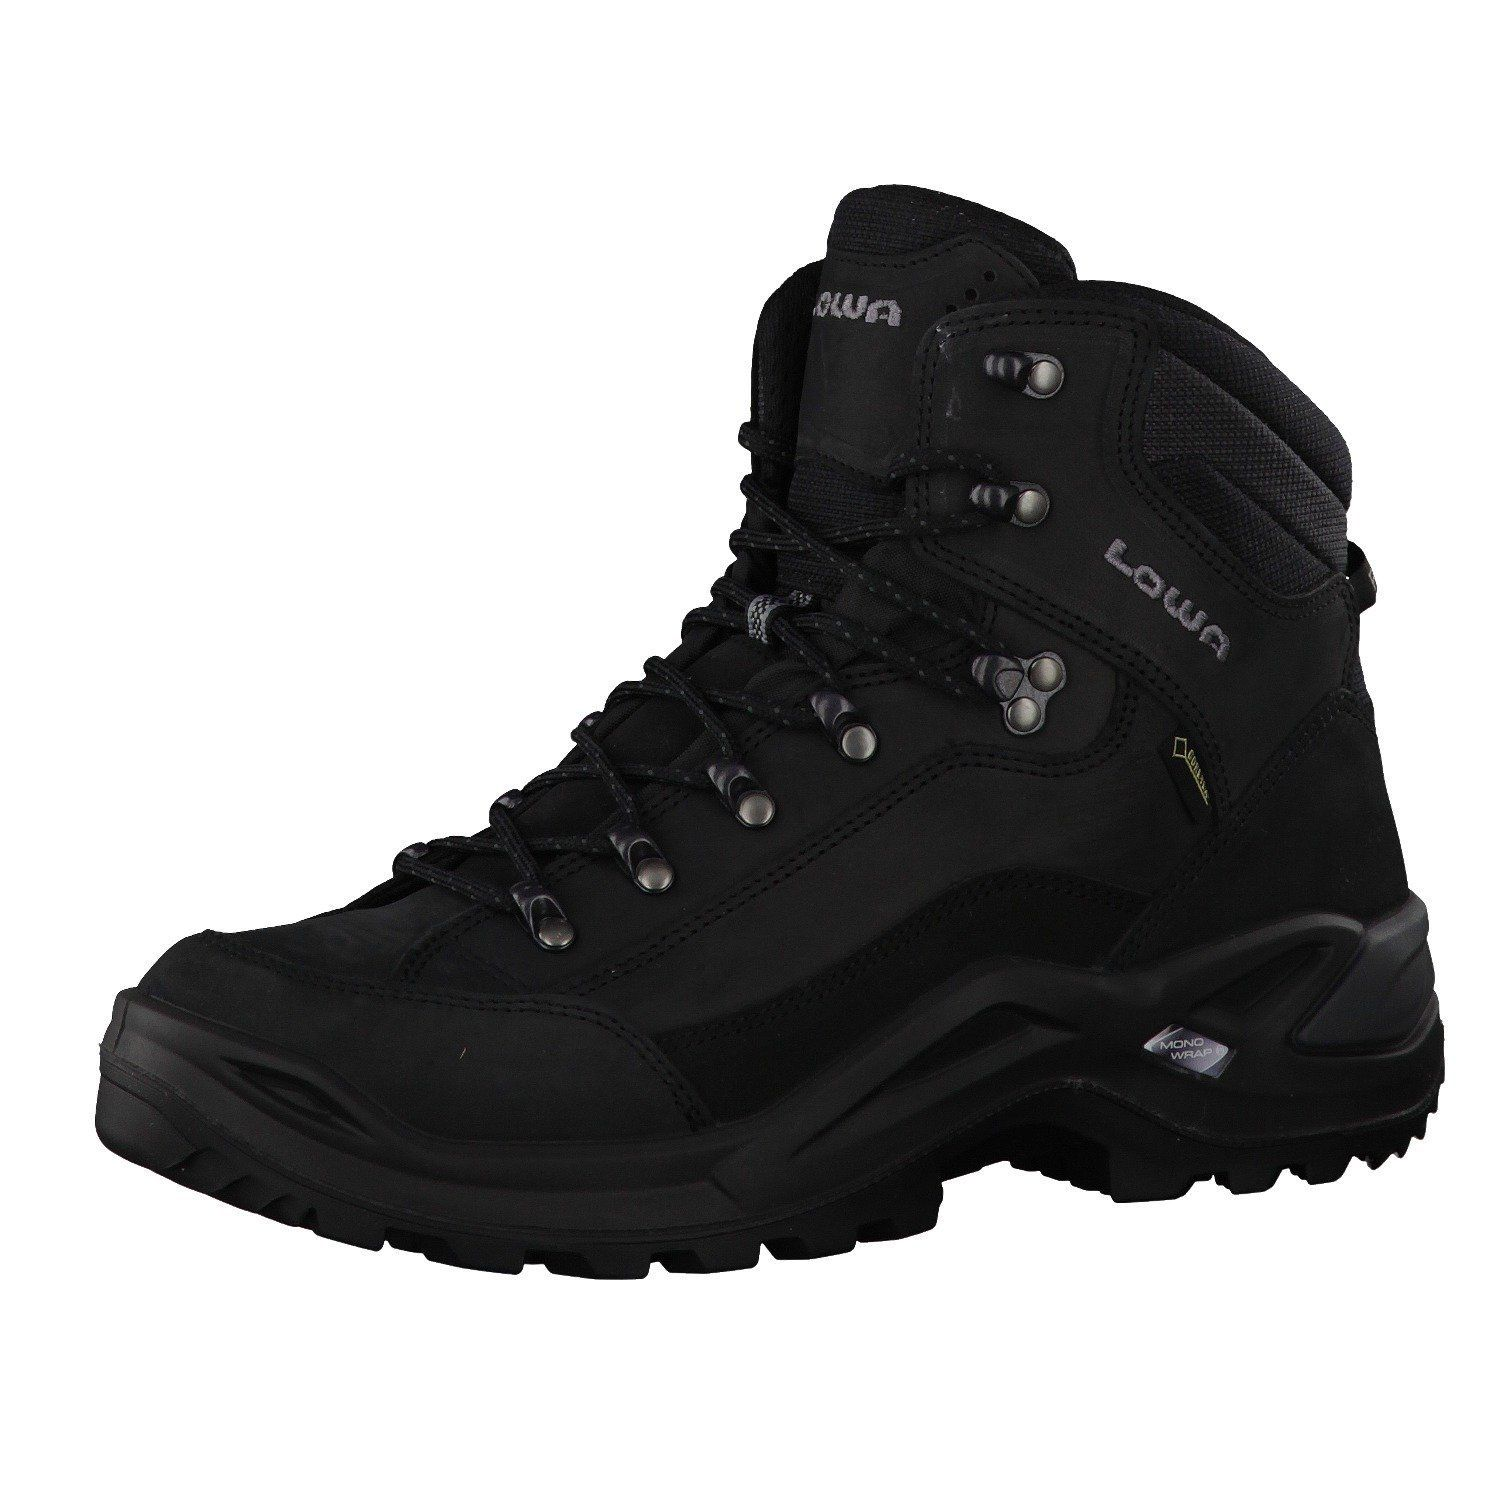 lowa renegade gtx mid men gore tex herren outdoor schuhe hiking boots schwarz ebay. Black Bedroom Furniture Sets. Home Design Ideas